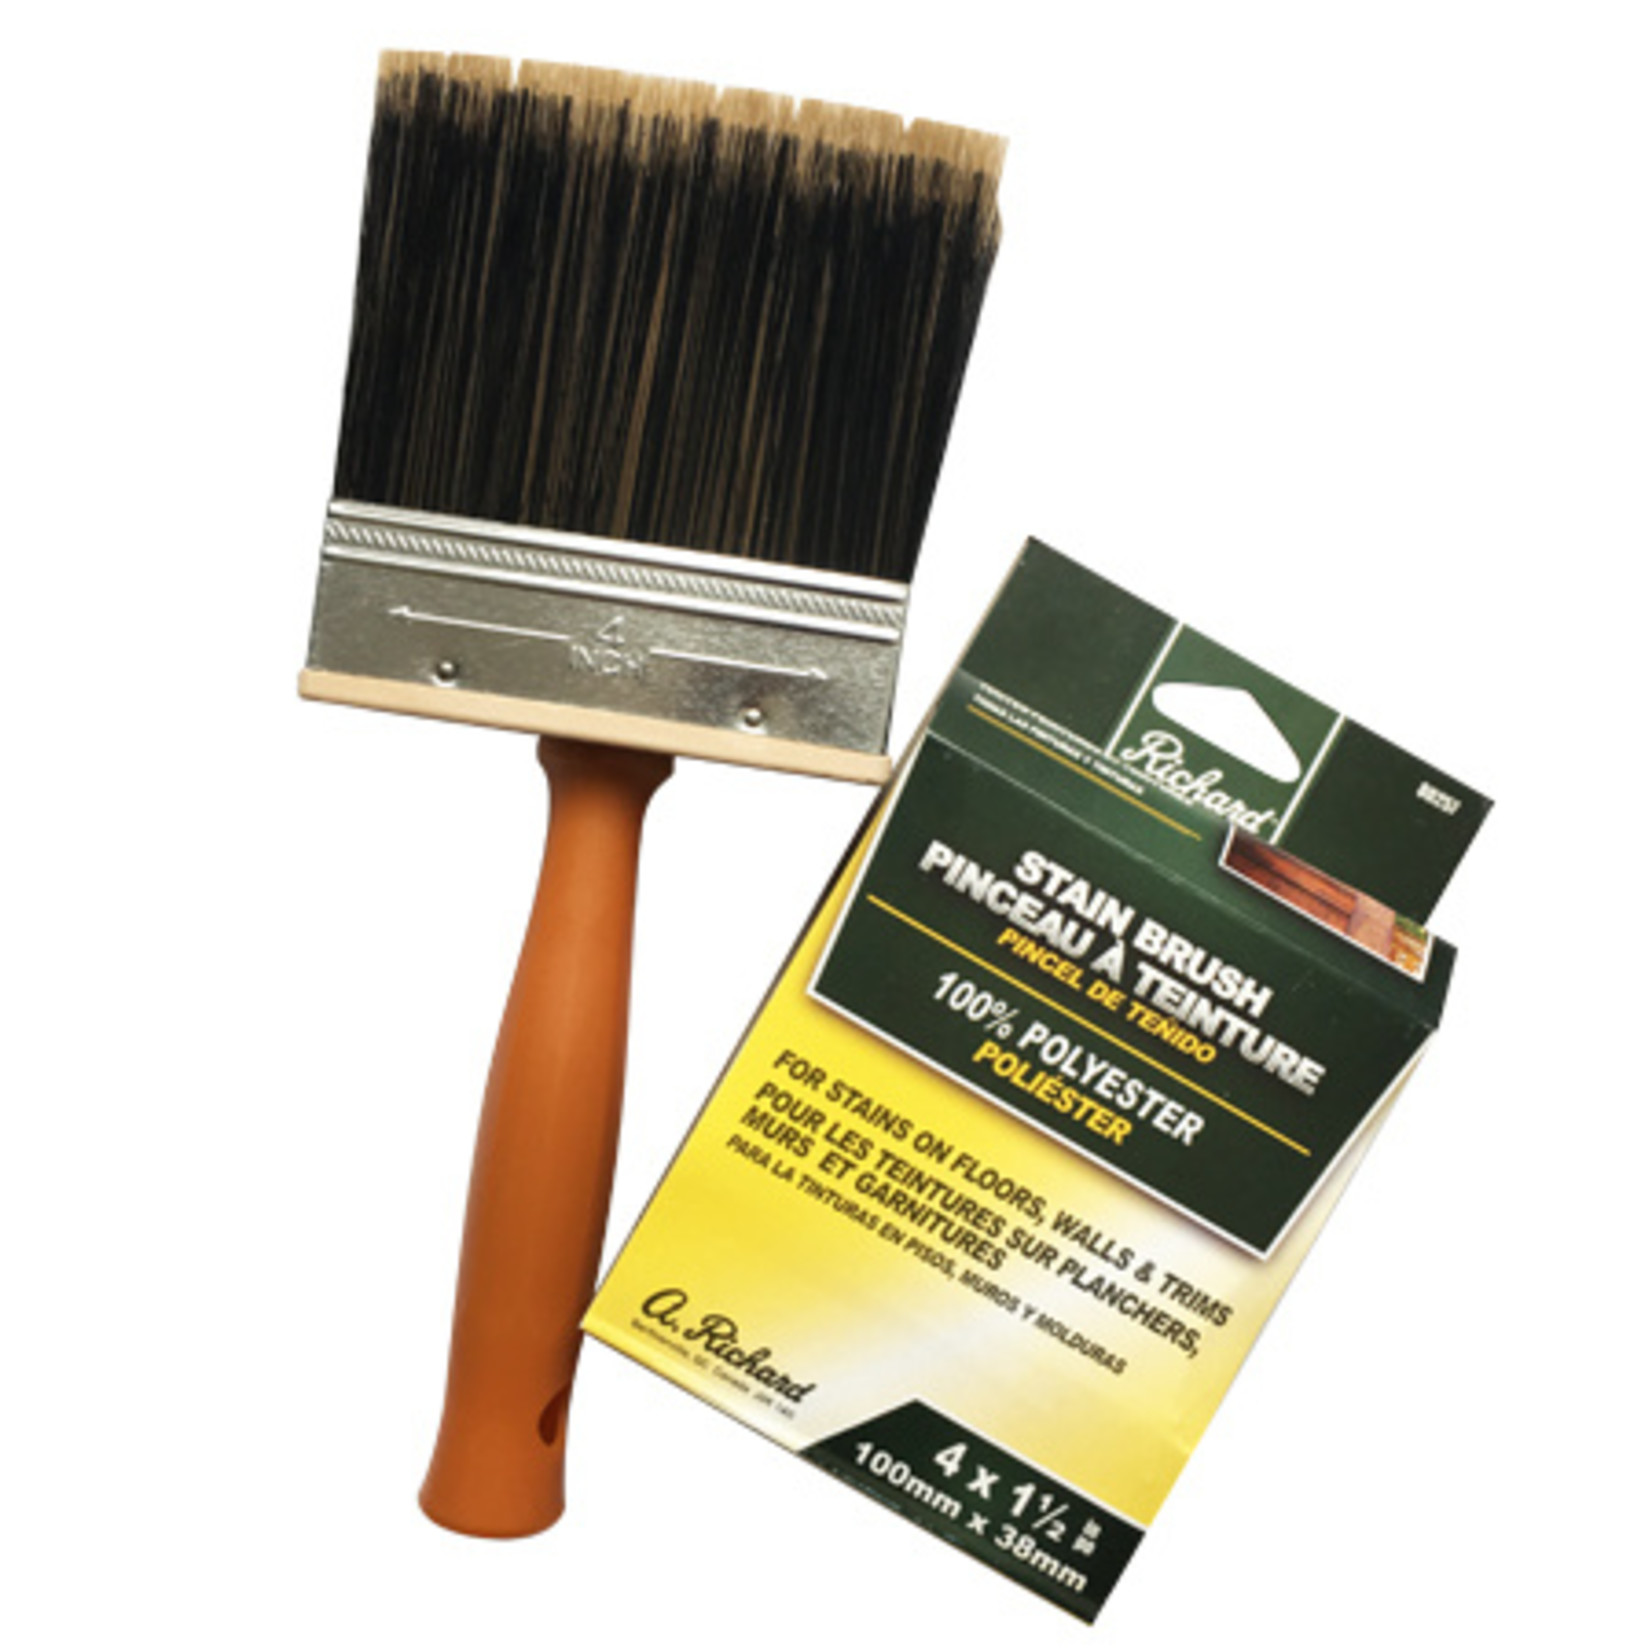 EVO Pinceau brosse - Soie synthétiques